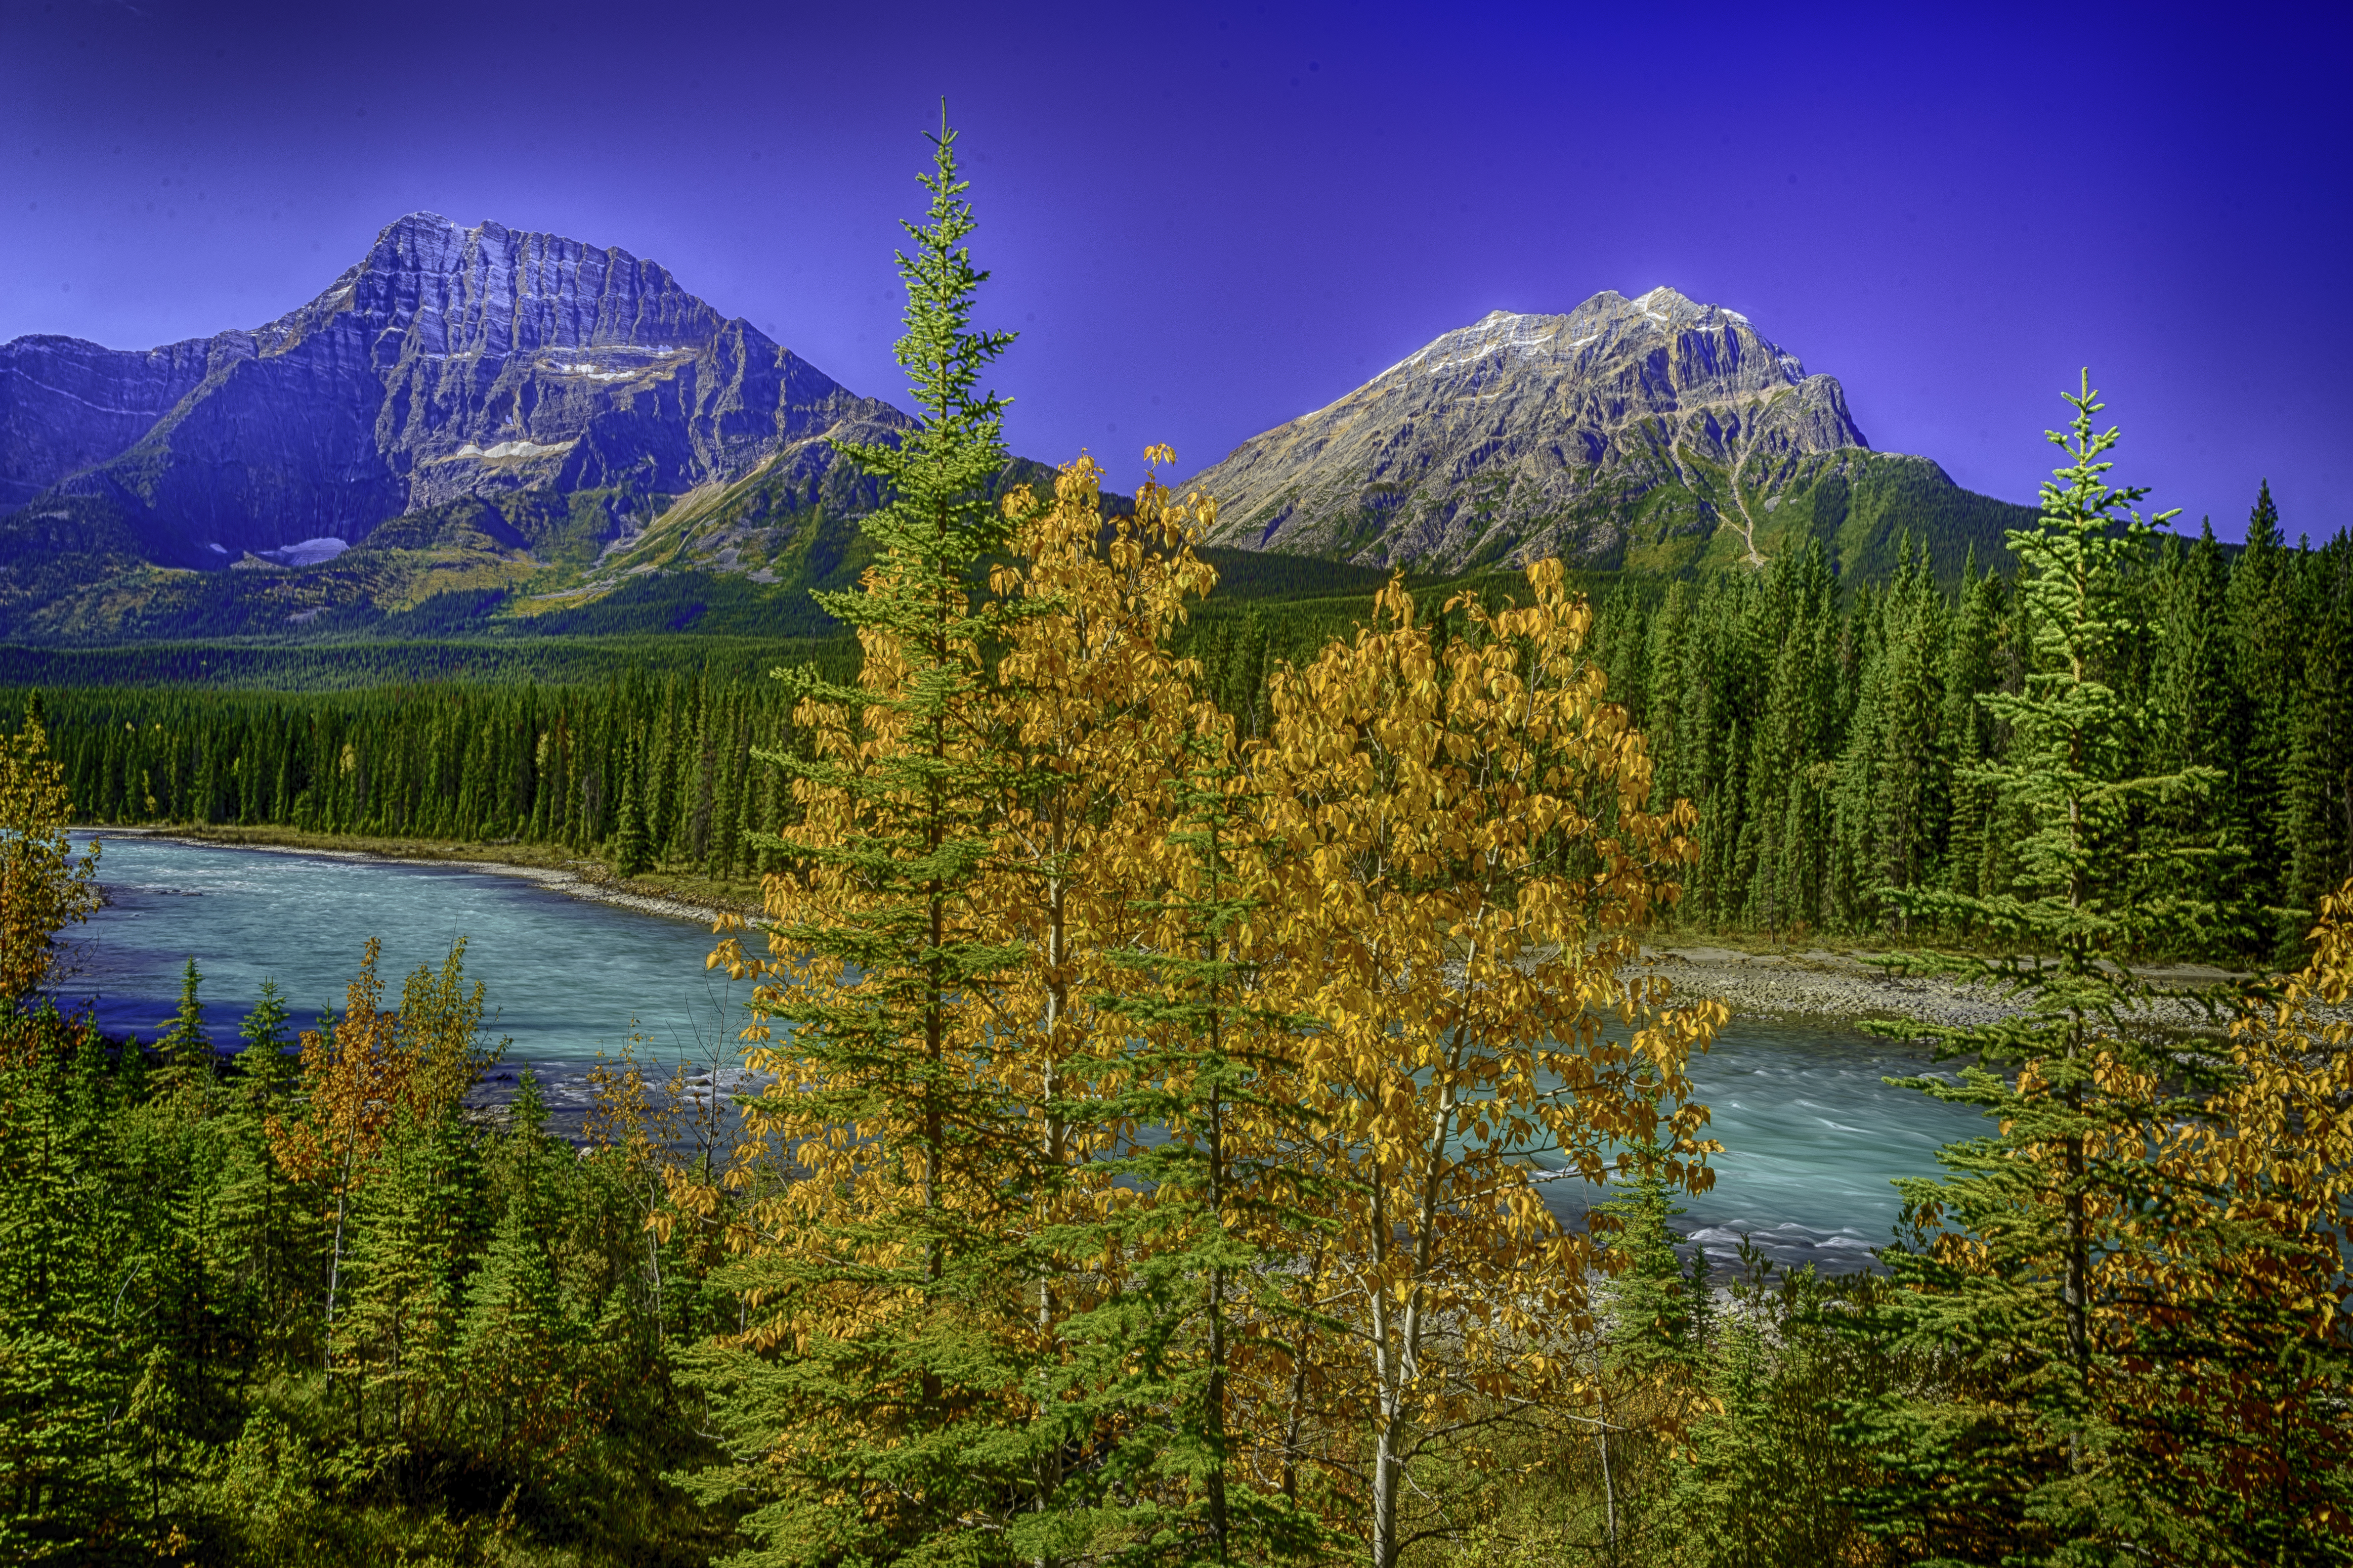 Bow River, Canadian Rockies